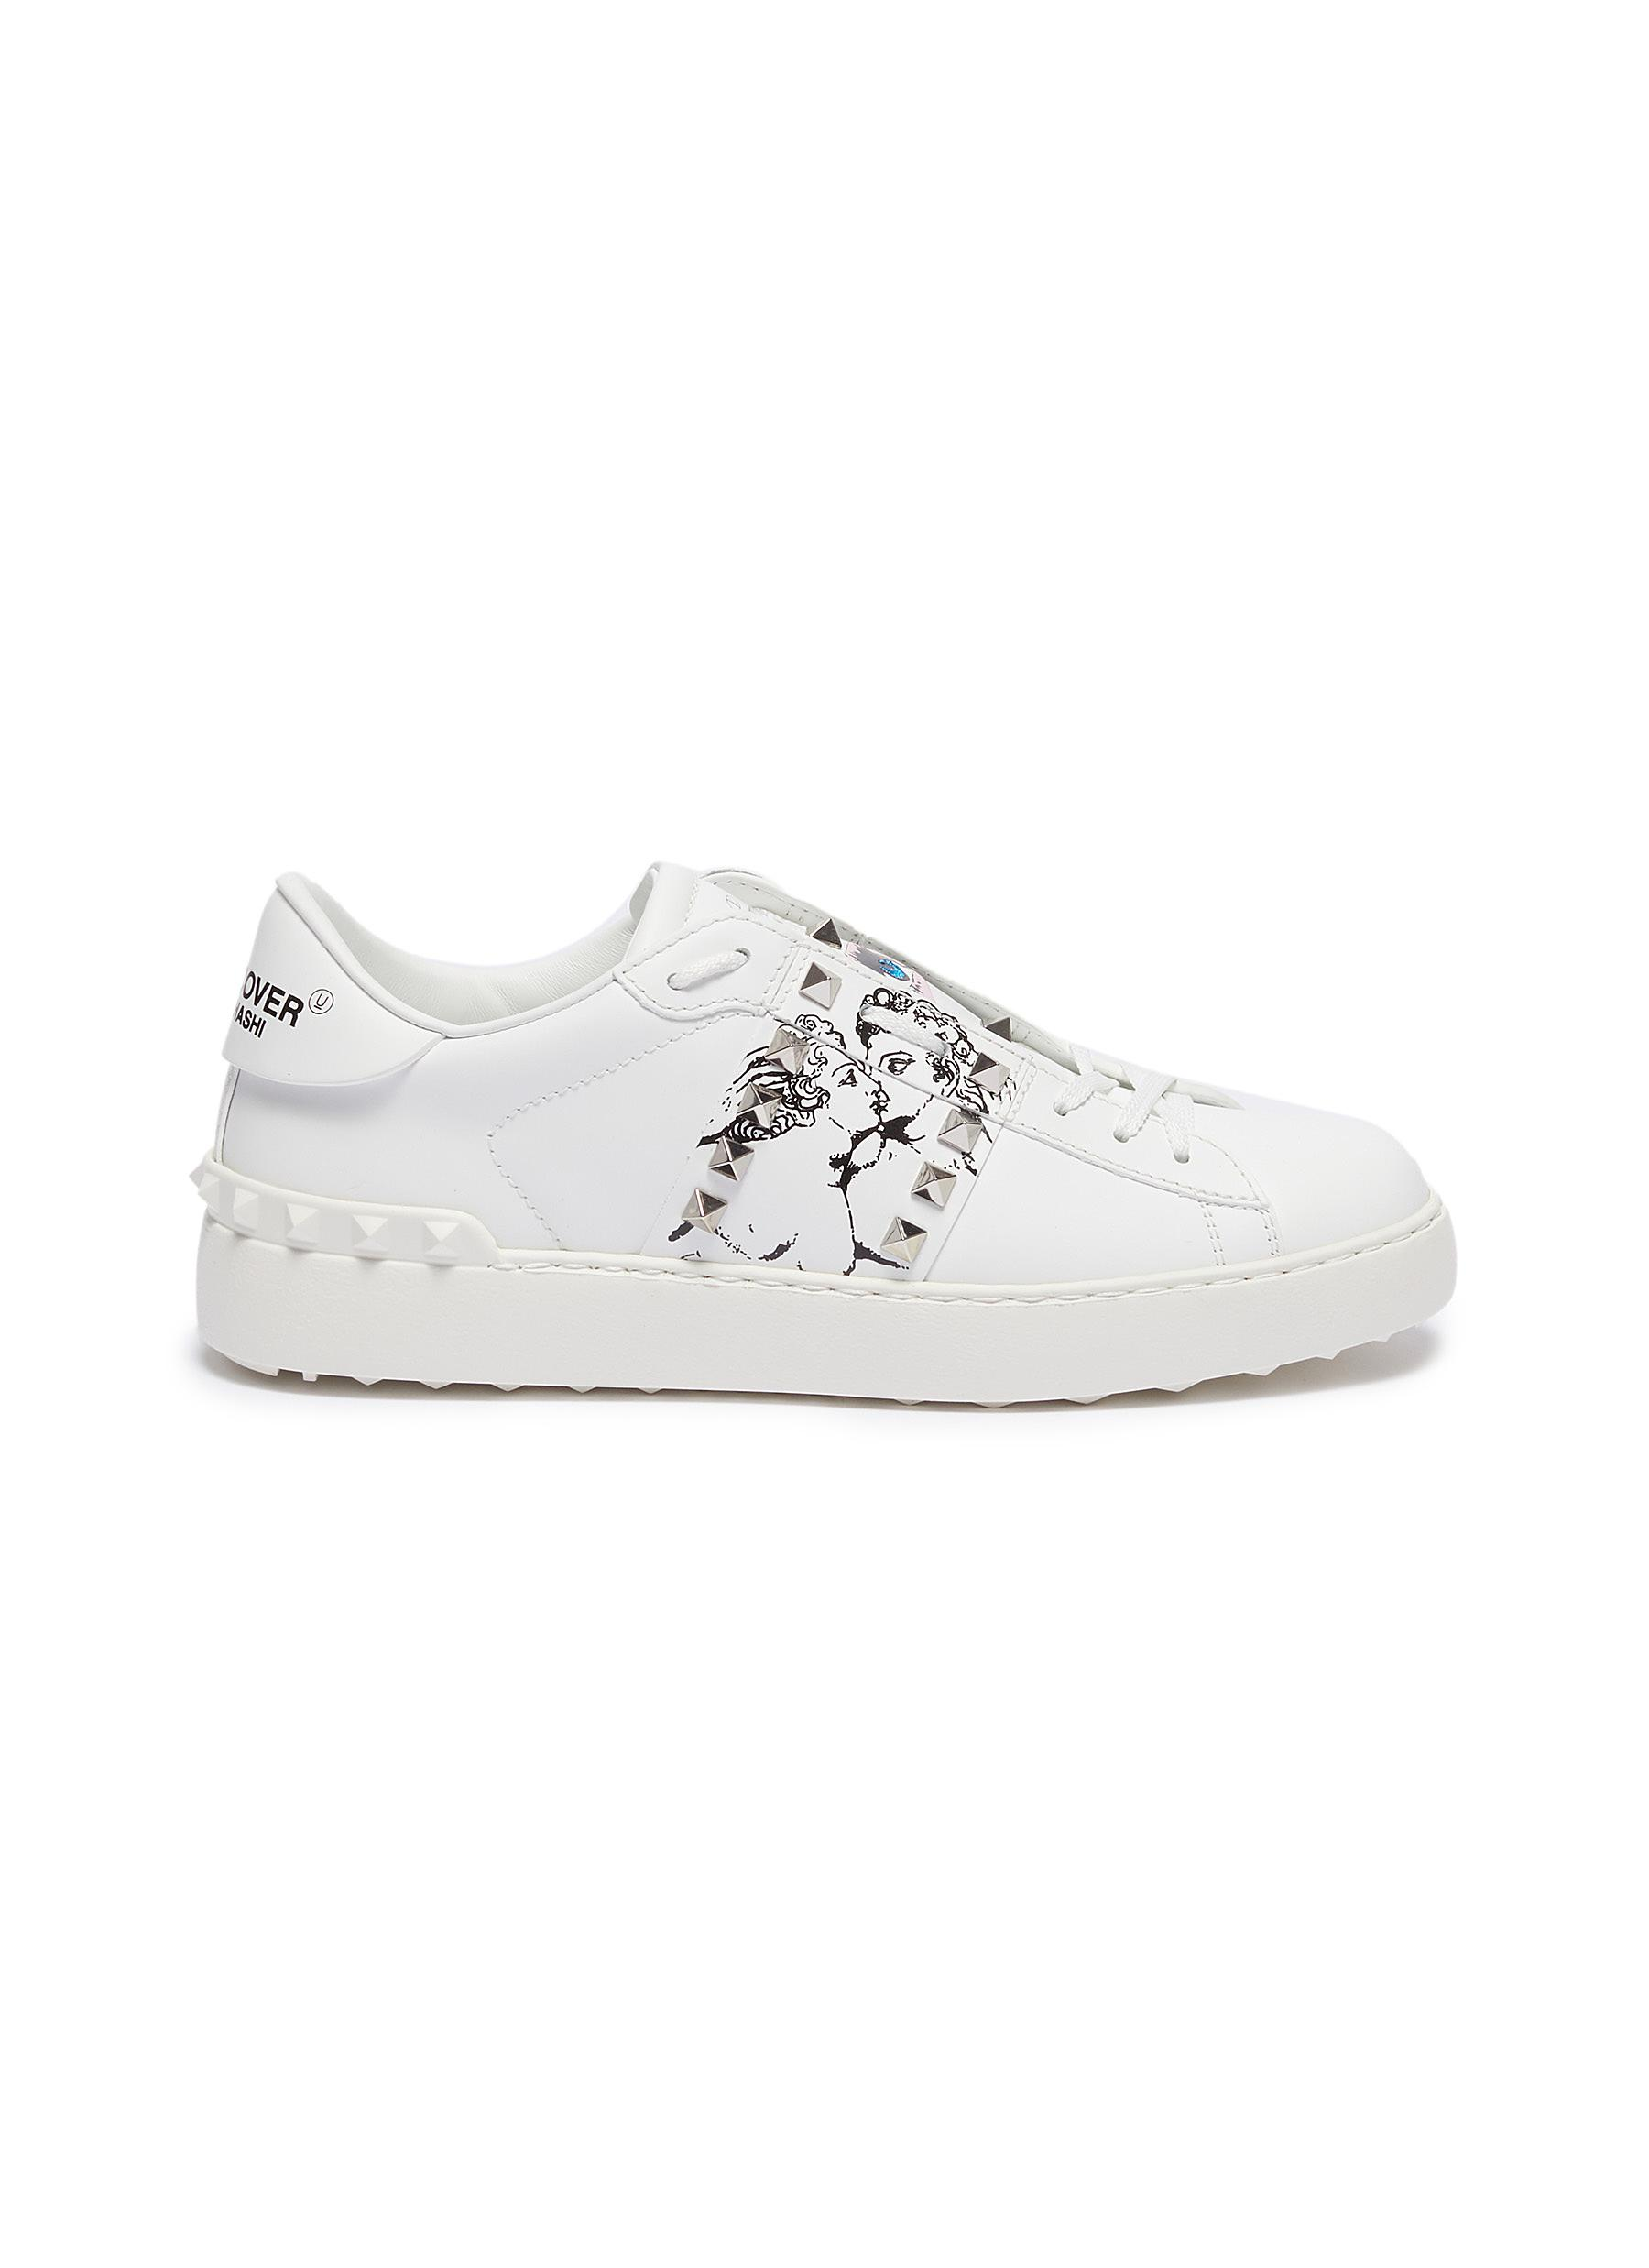 x UNDERCOVER Untitled lovers print leather sneakers by Valentino